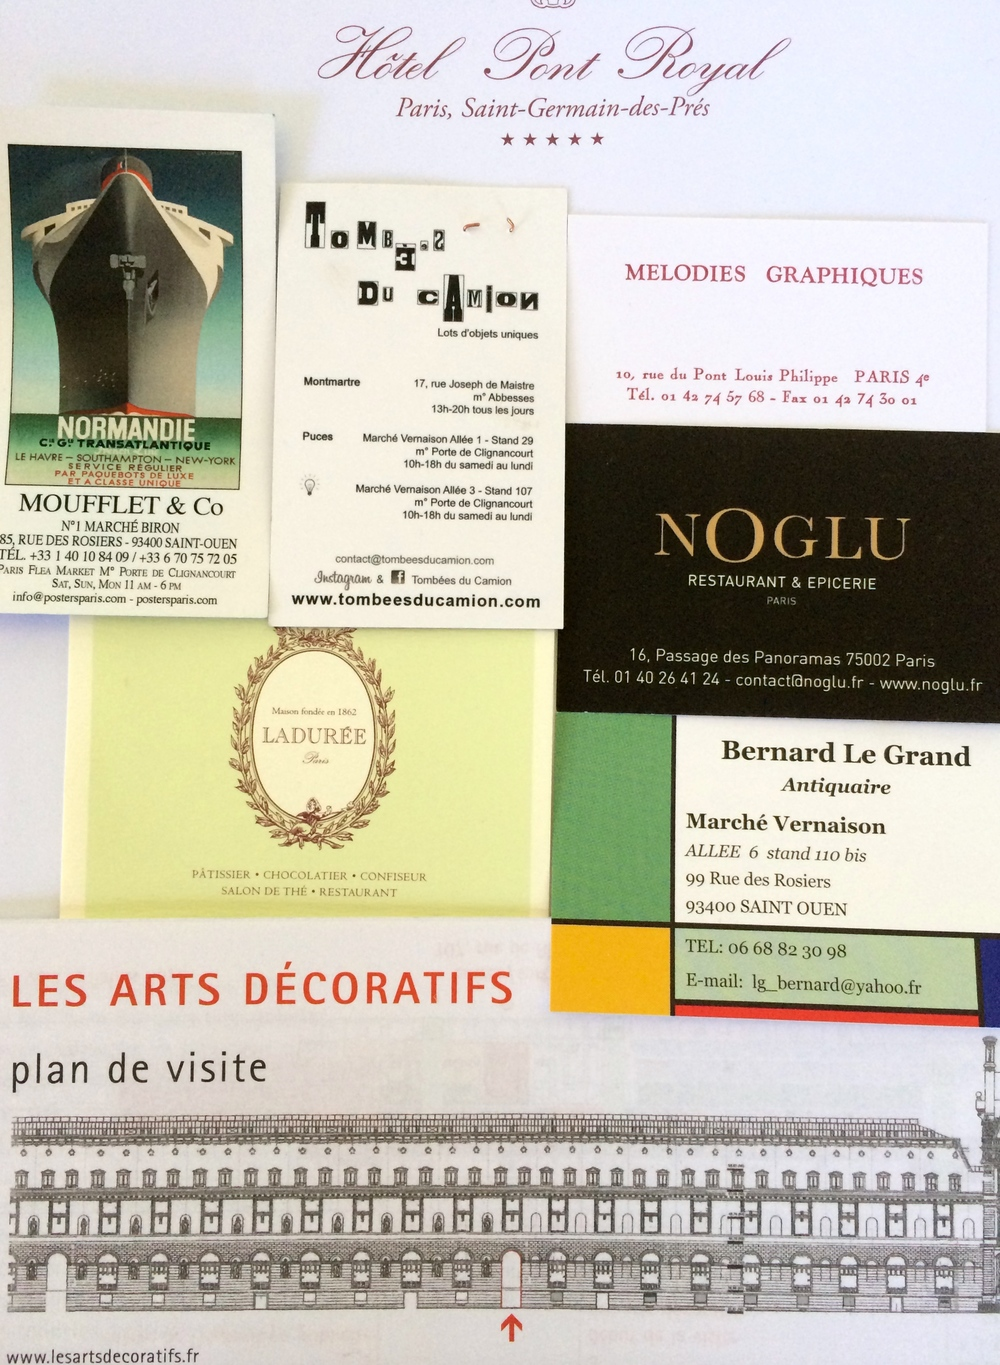 Some cards and contact info from places that I would have no qualms about recommending. If I could find their card, I'd also ad the Fabriano paper and pen store on the Rue du Bac whose proprietress is very friendly and helpful. It occupies the spot where the old ink store Georges & Co., used to be, which is how I ended up in there.